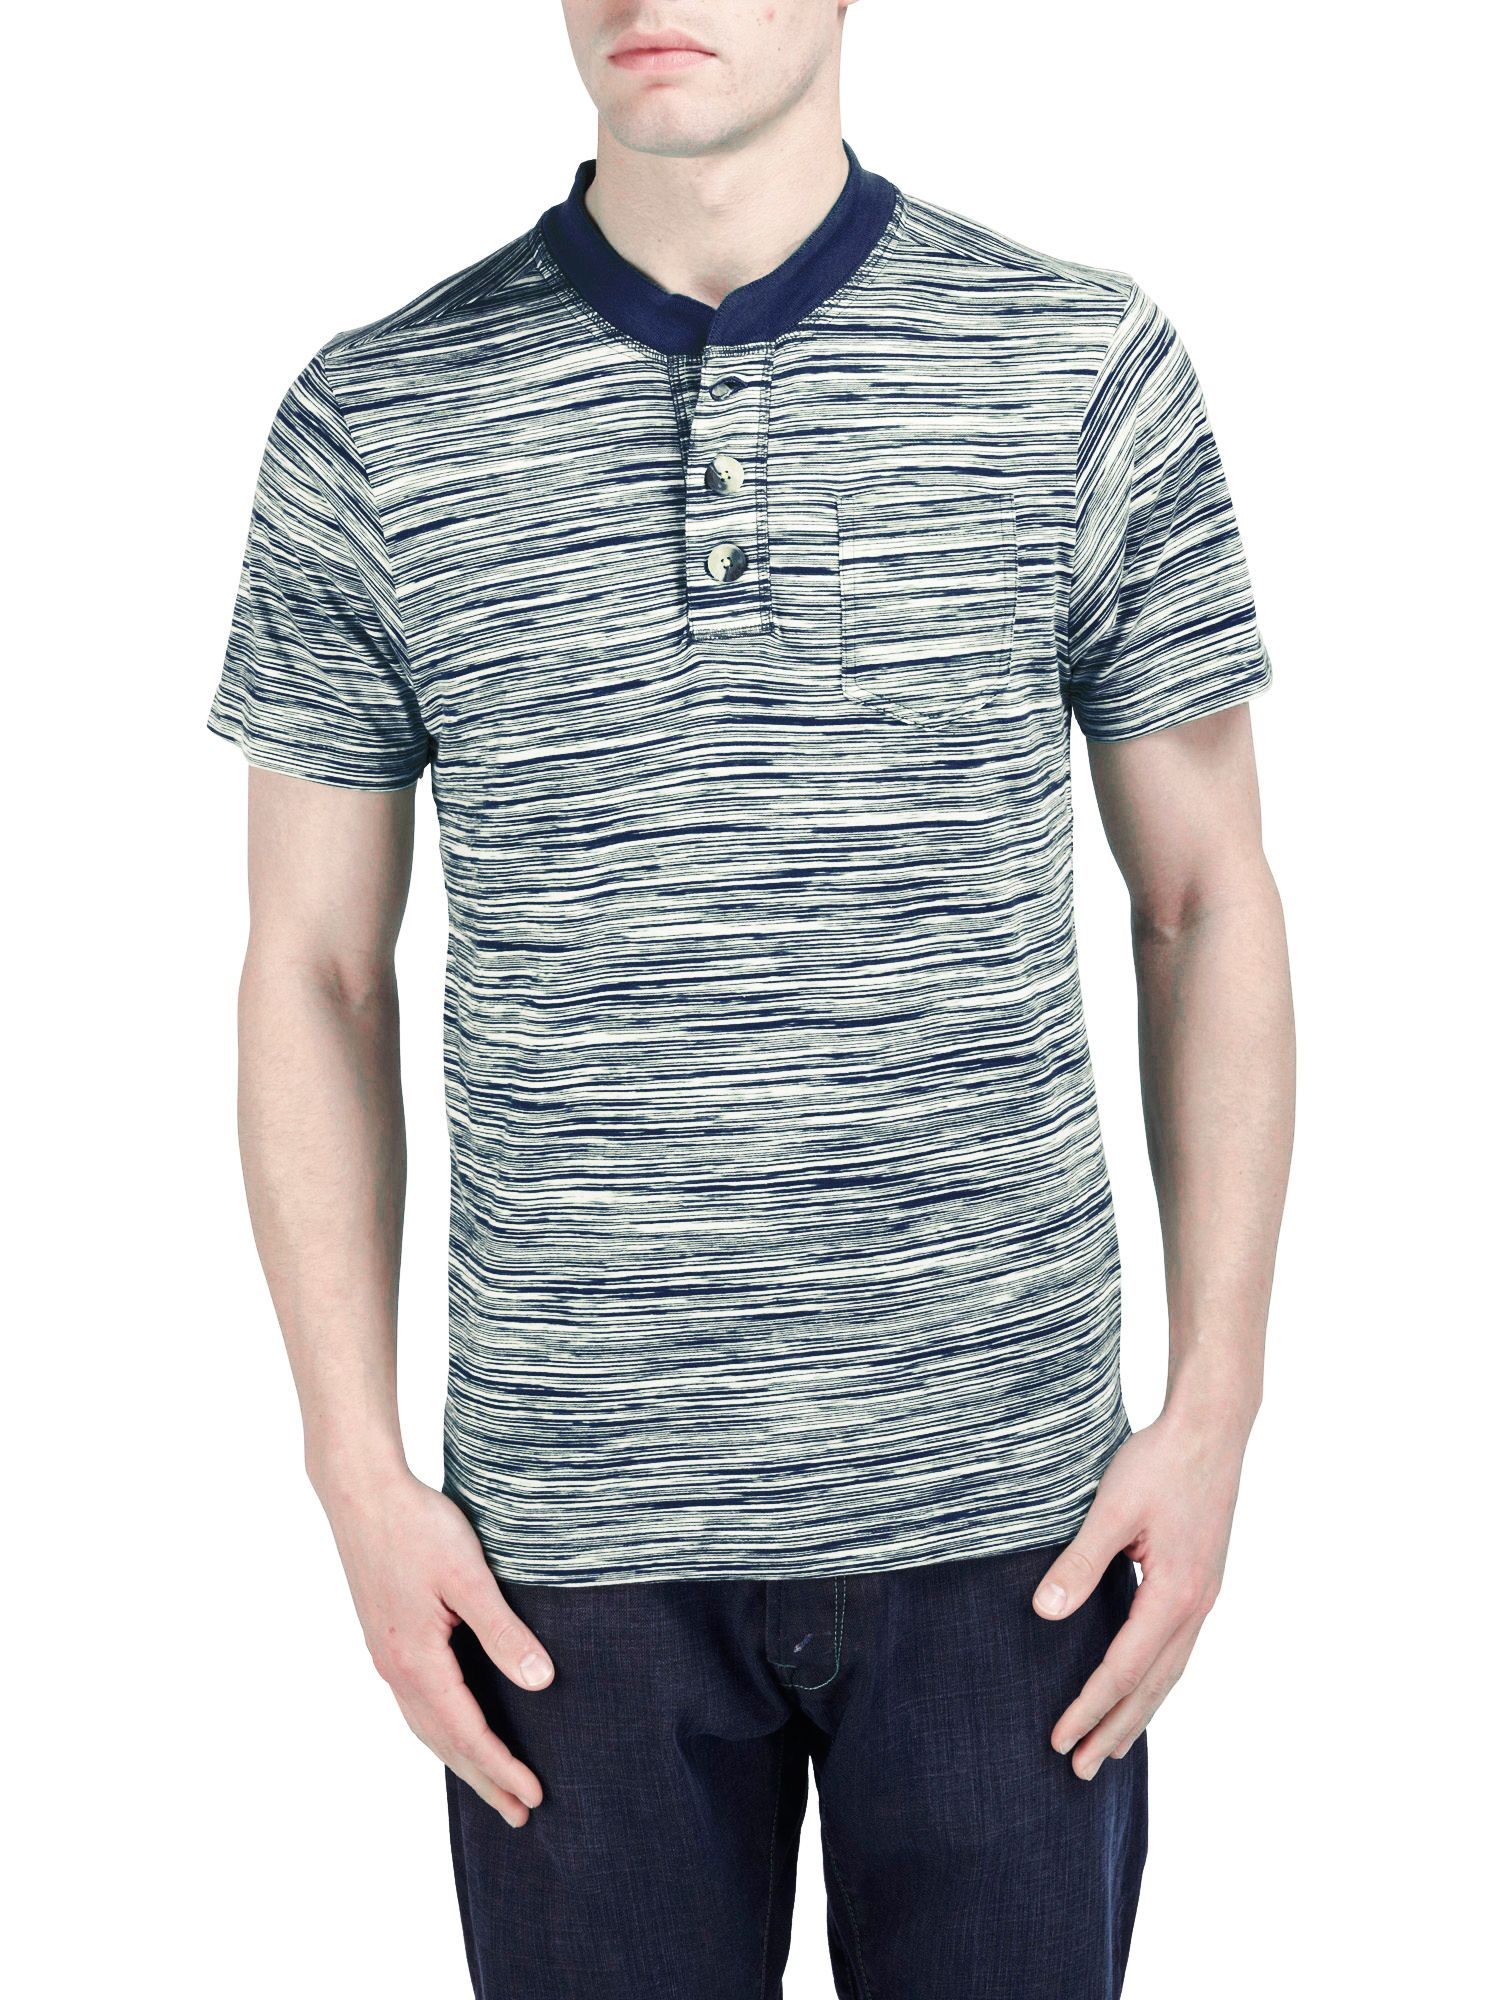 Lucca short sleeve t-shirt